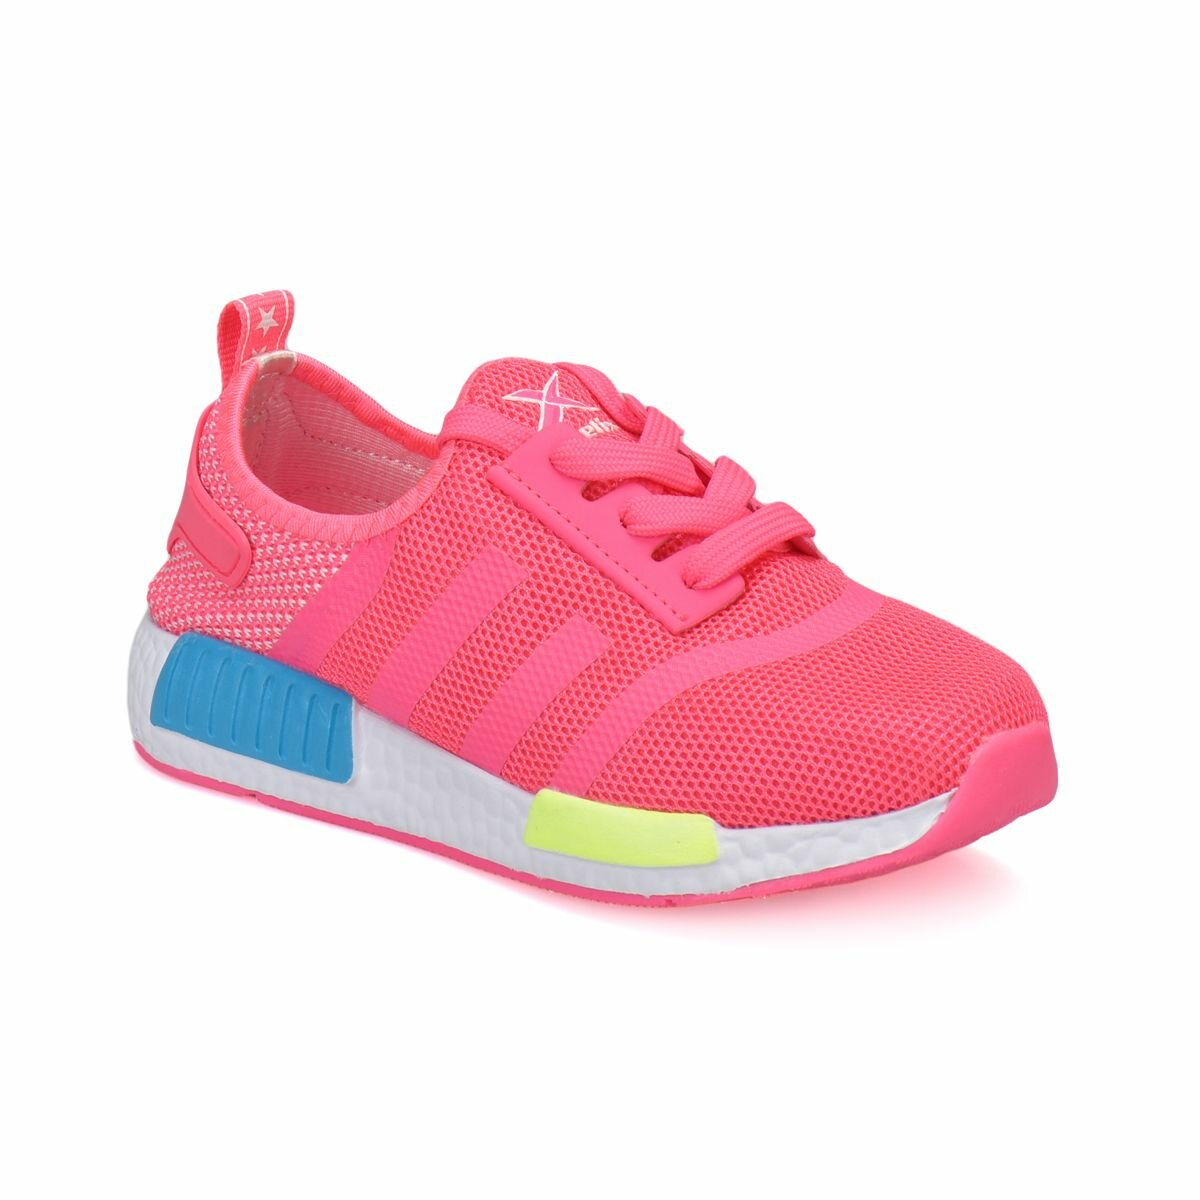 FLO NEPAL Pink Female Child Sneaker Shoes KINETIX